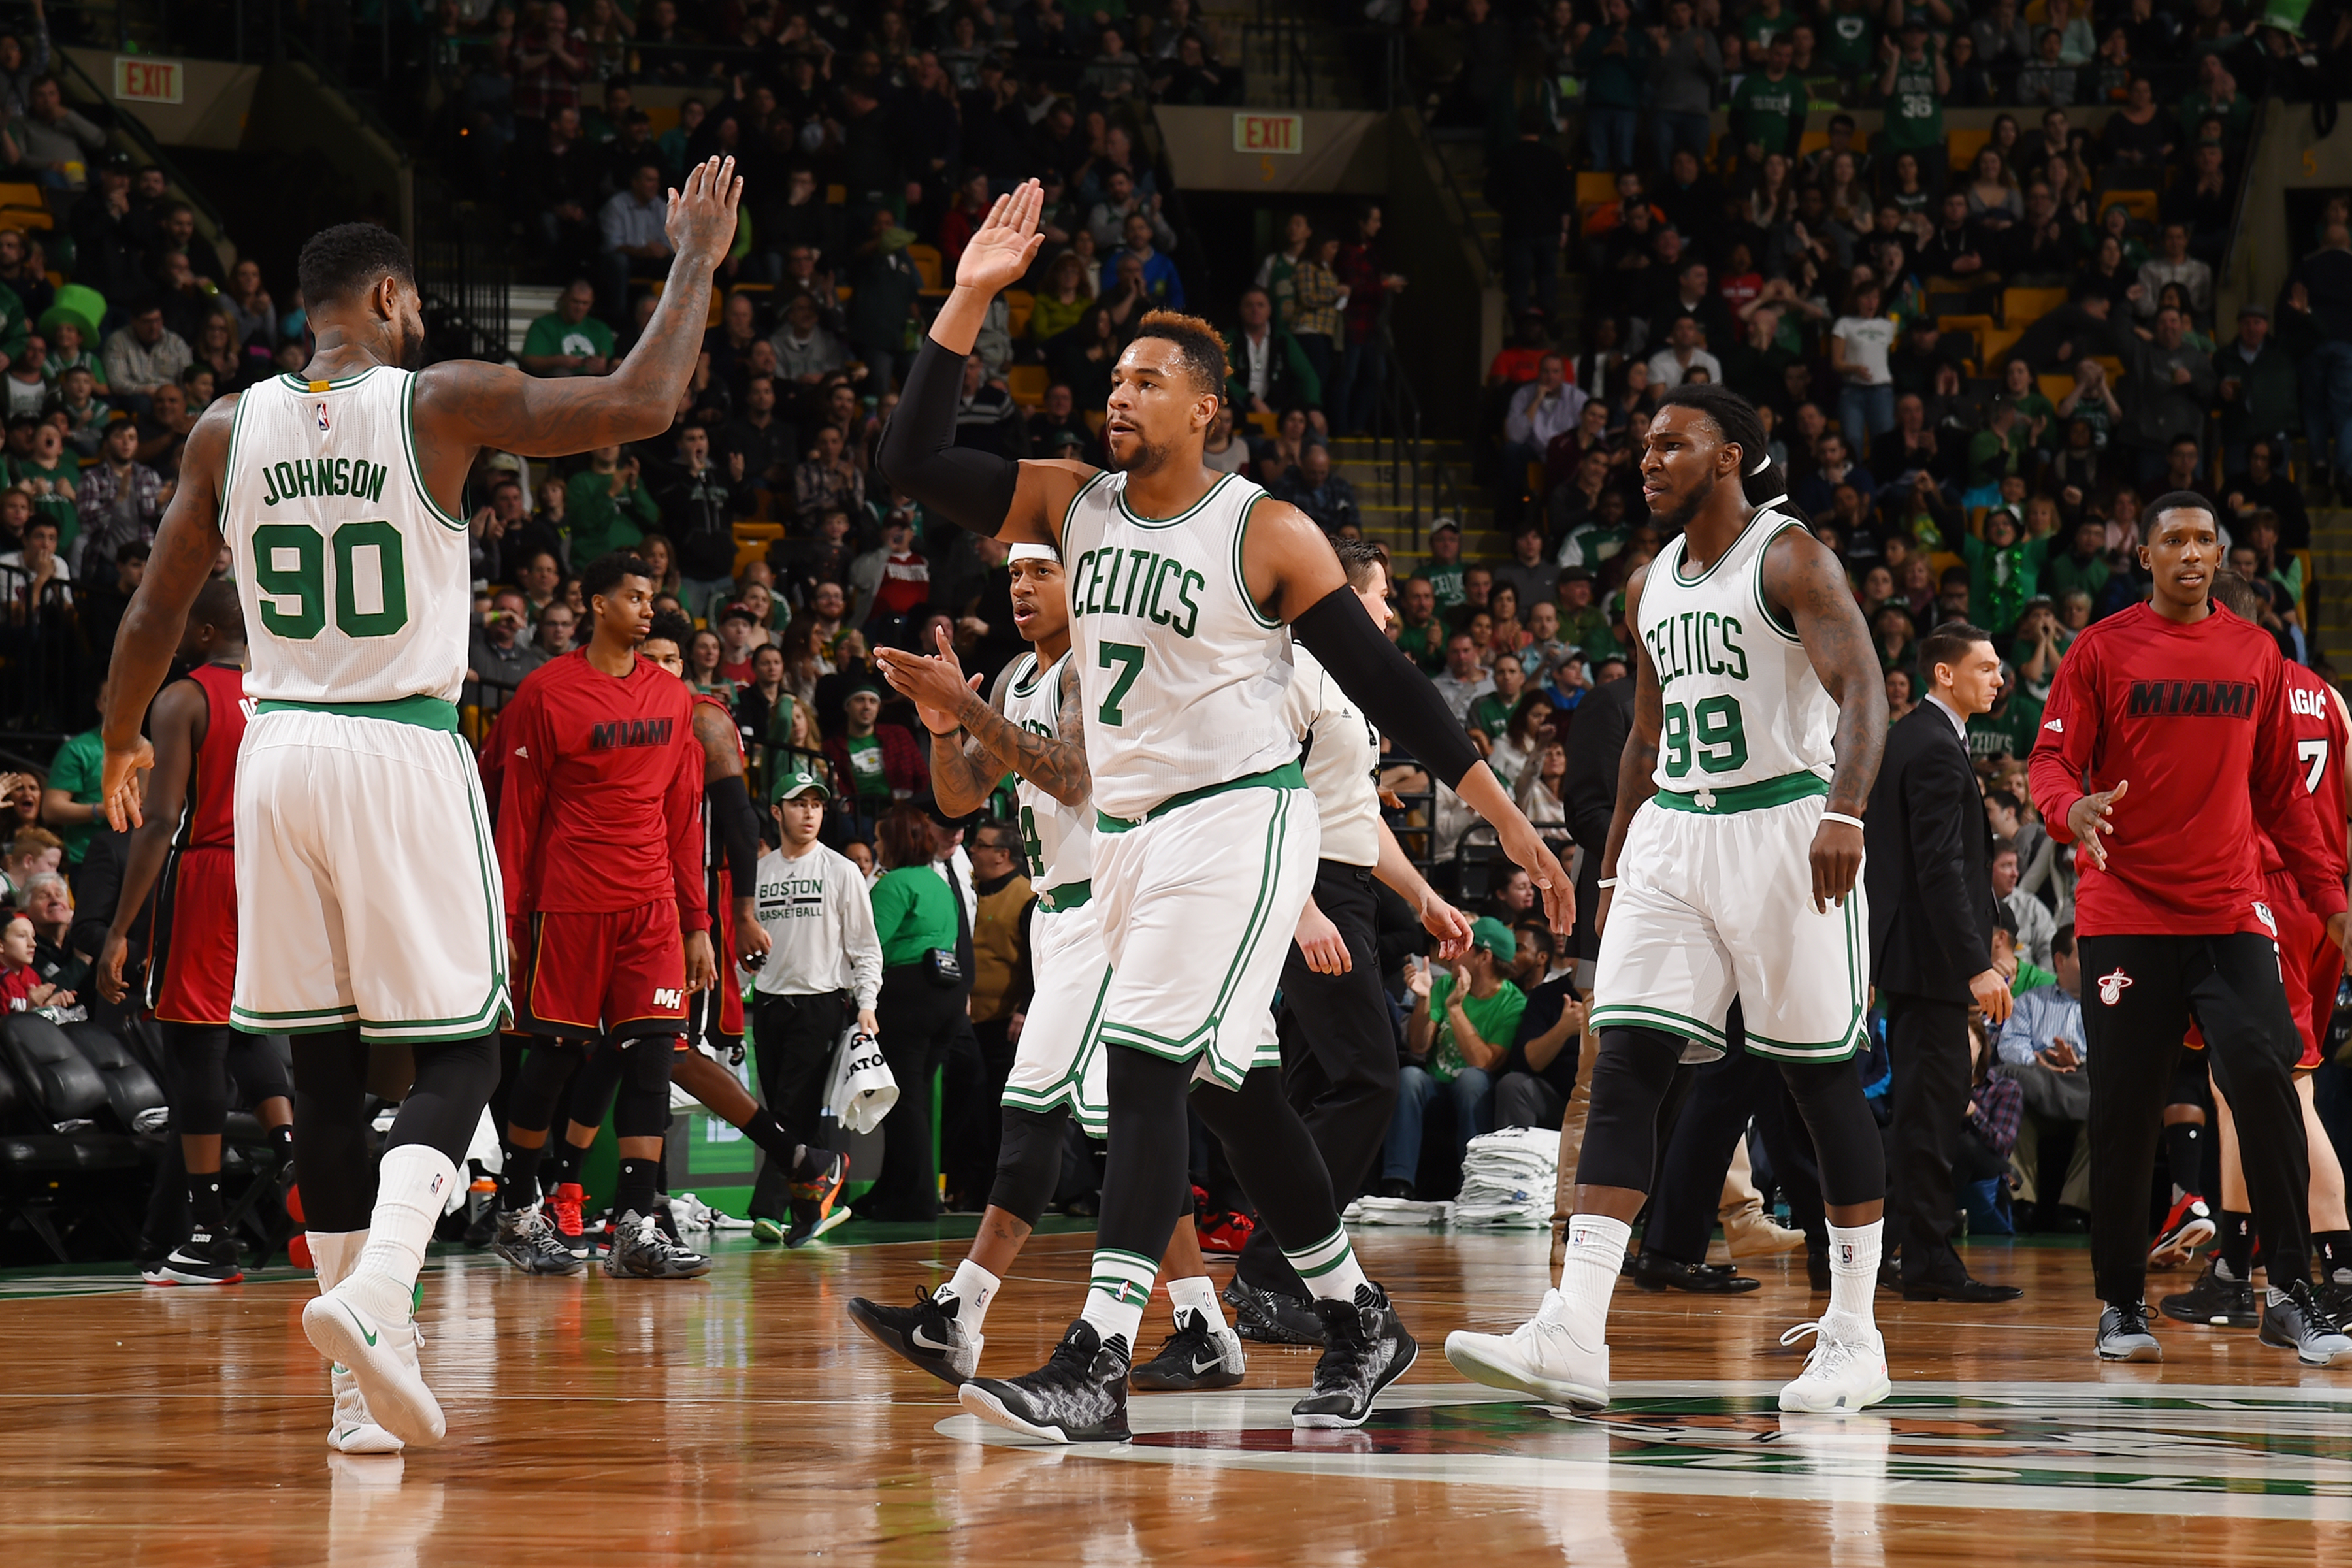 BOSTON, MA - FEBRUARY 27:  Jared Sullinger #7 of the Boston Celtics shakes hands with his teammates during the game against the Miami Heat on February 27, 2016 at the TD Garden in Boston, Massachusetts.  (Photo by Steve Babineau/NBAE via Getty Images)